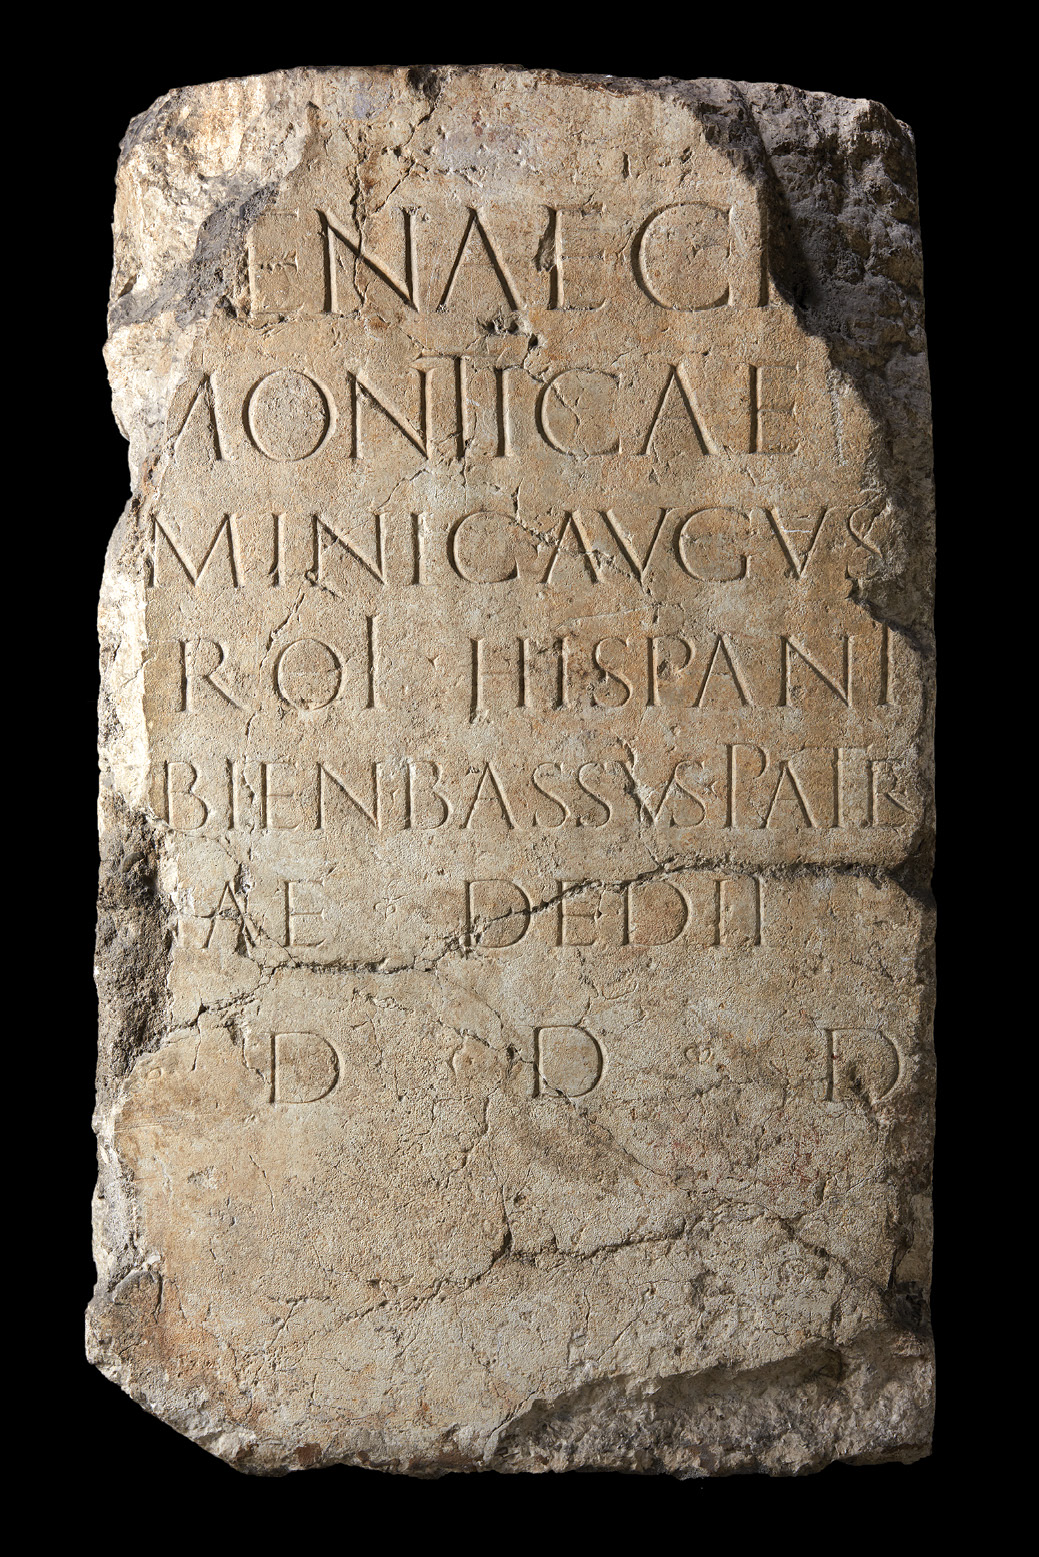 LEFT This inscription, honouring Montica (named in the second line), a priestess of the imperial cult (mentioned in the third line), served as the base for her statue, set up by her proud father.